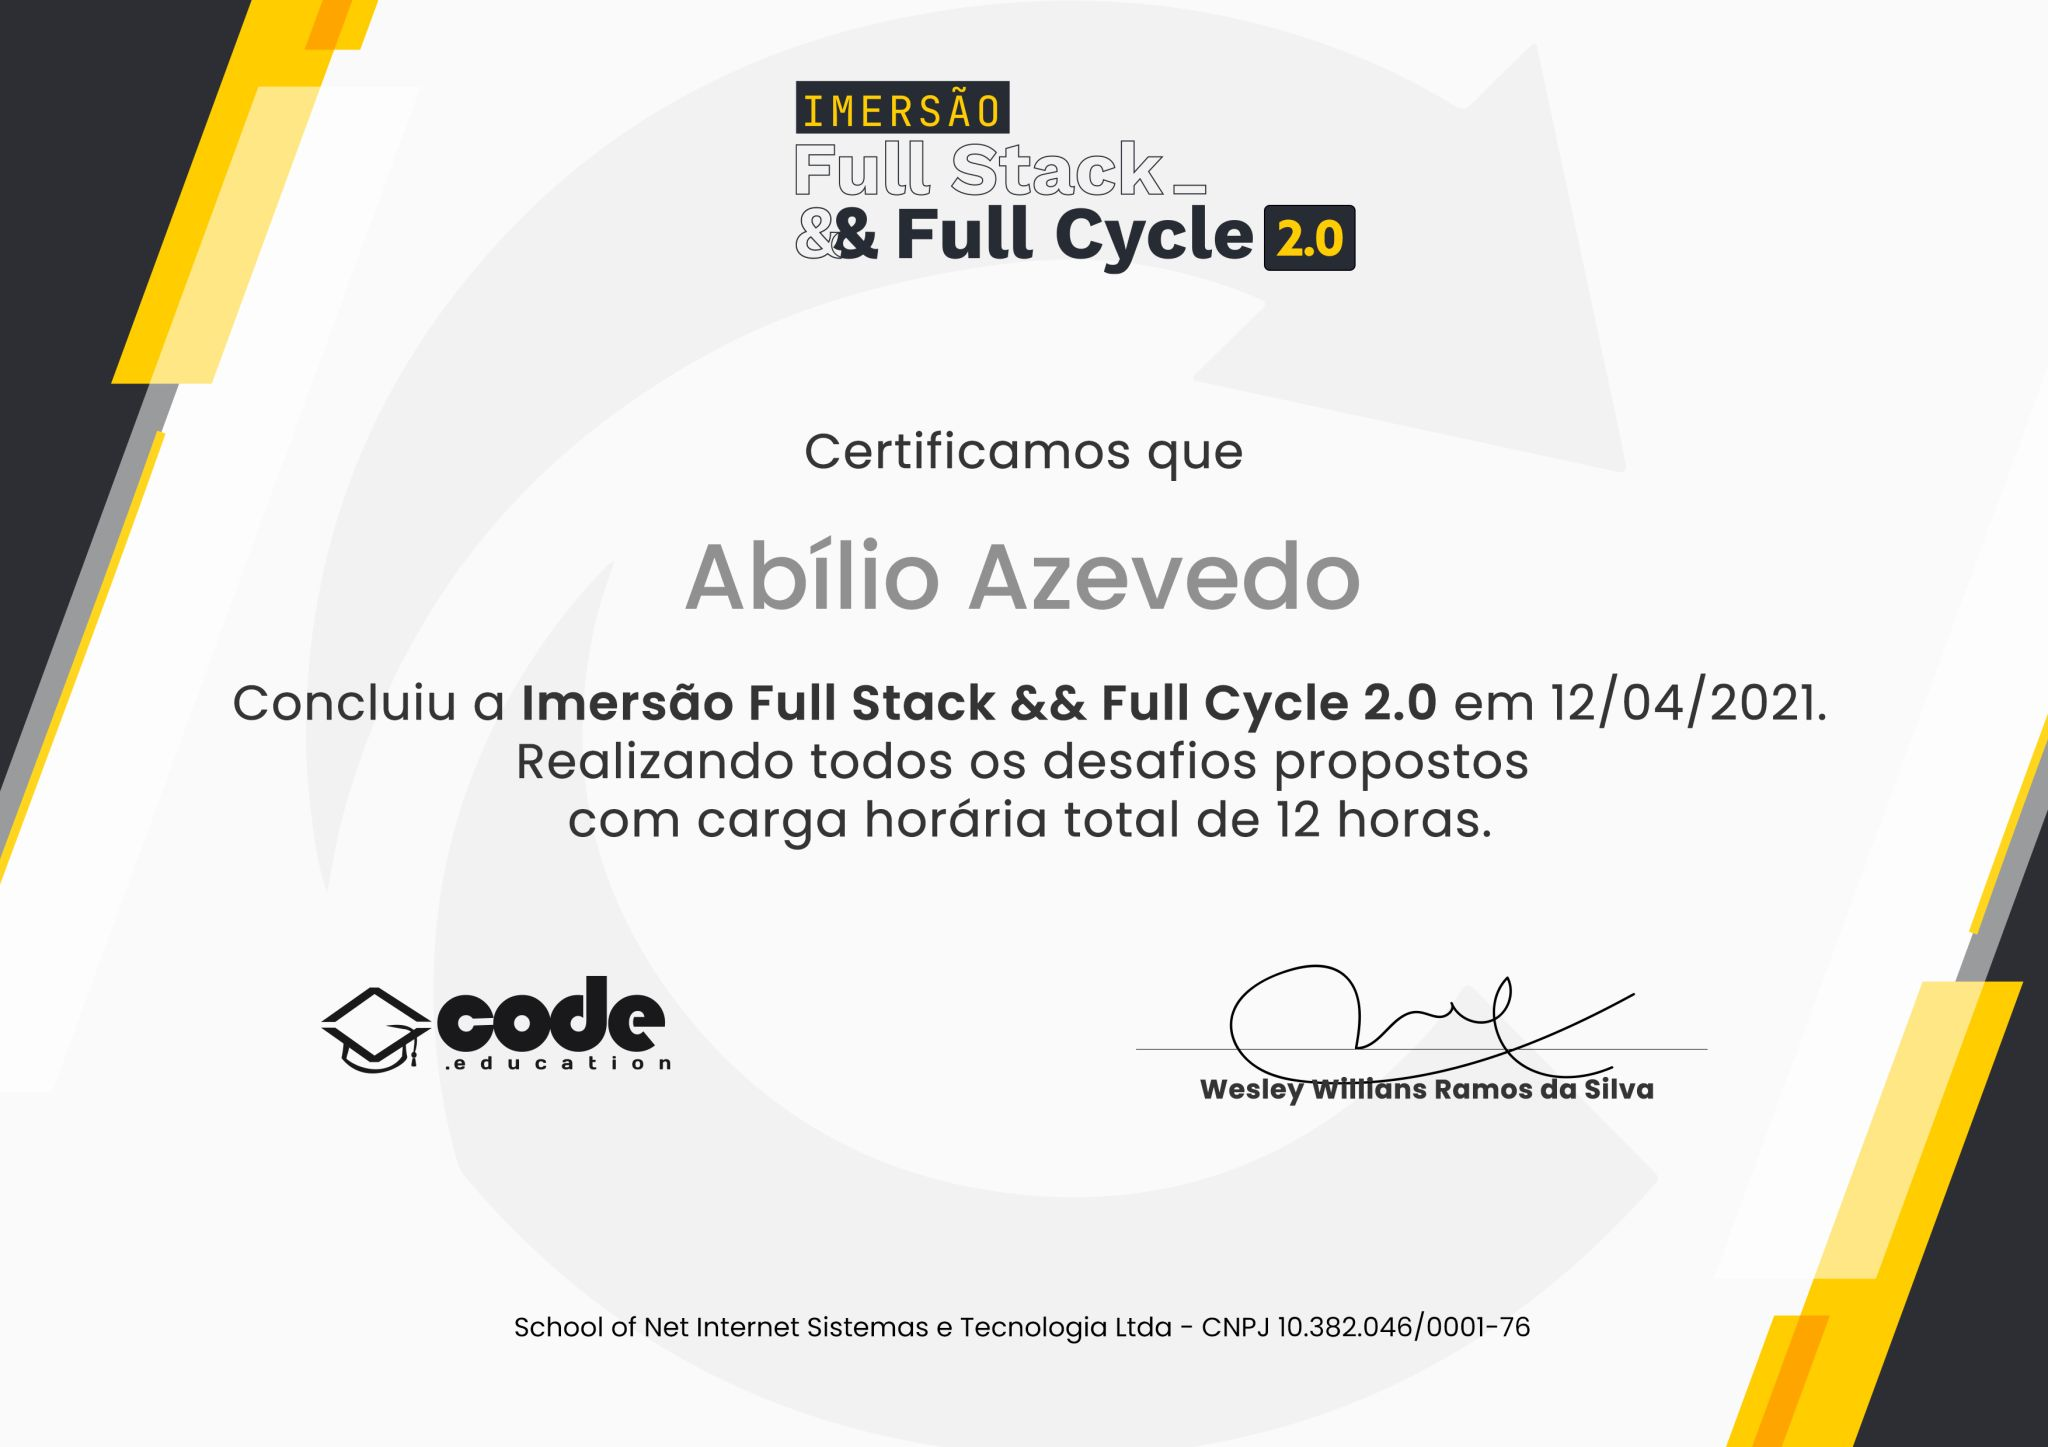 Cover Image for Full Stack & Full Cycle Immersion 2.0